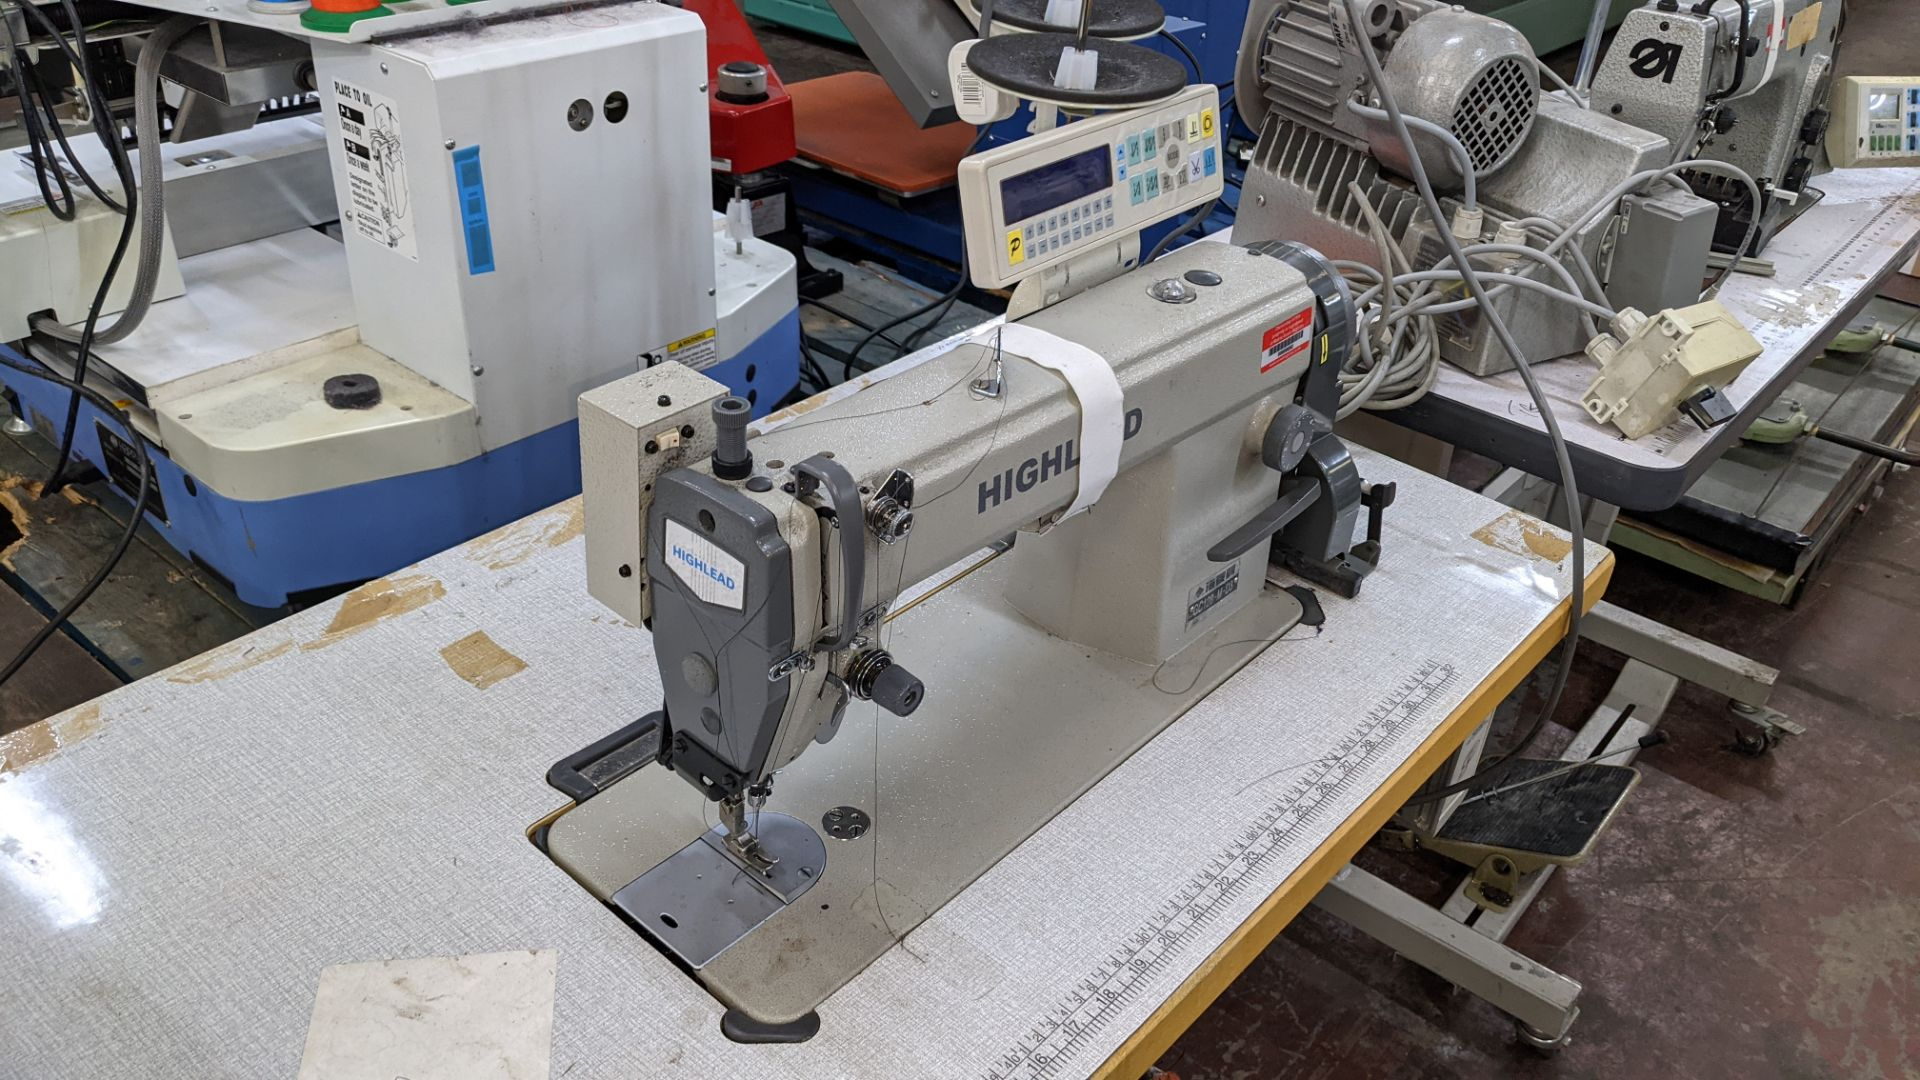 Highlead model GC128-M-D3 sewing machine - Image 9 of 18